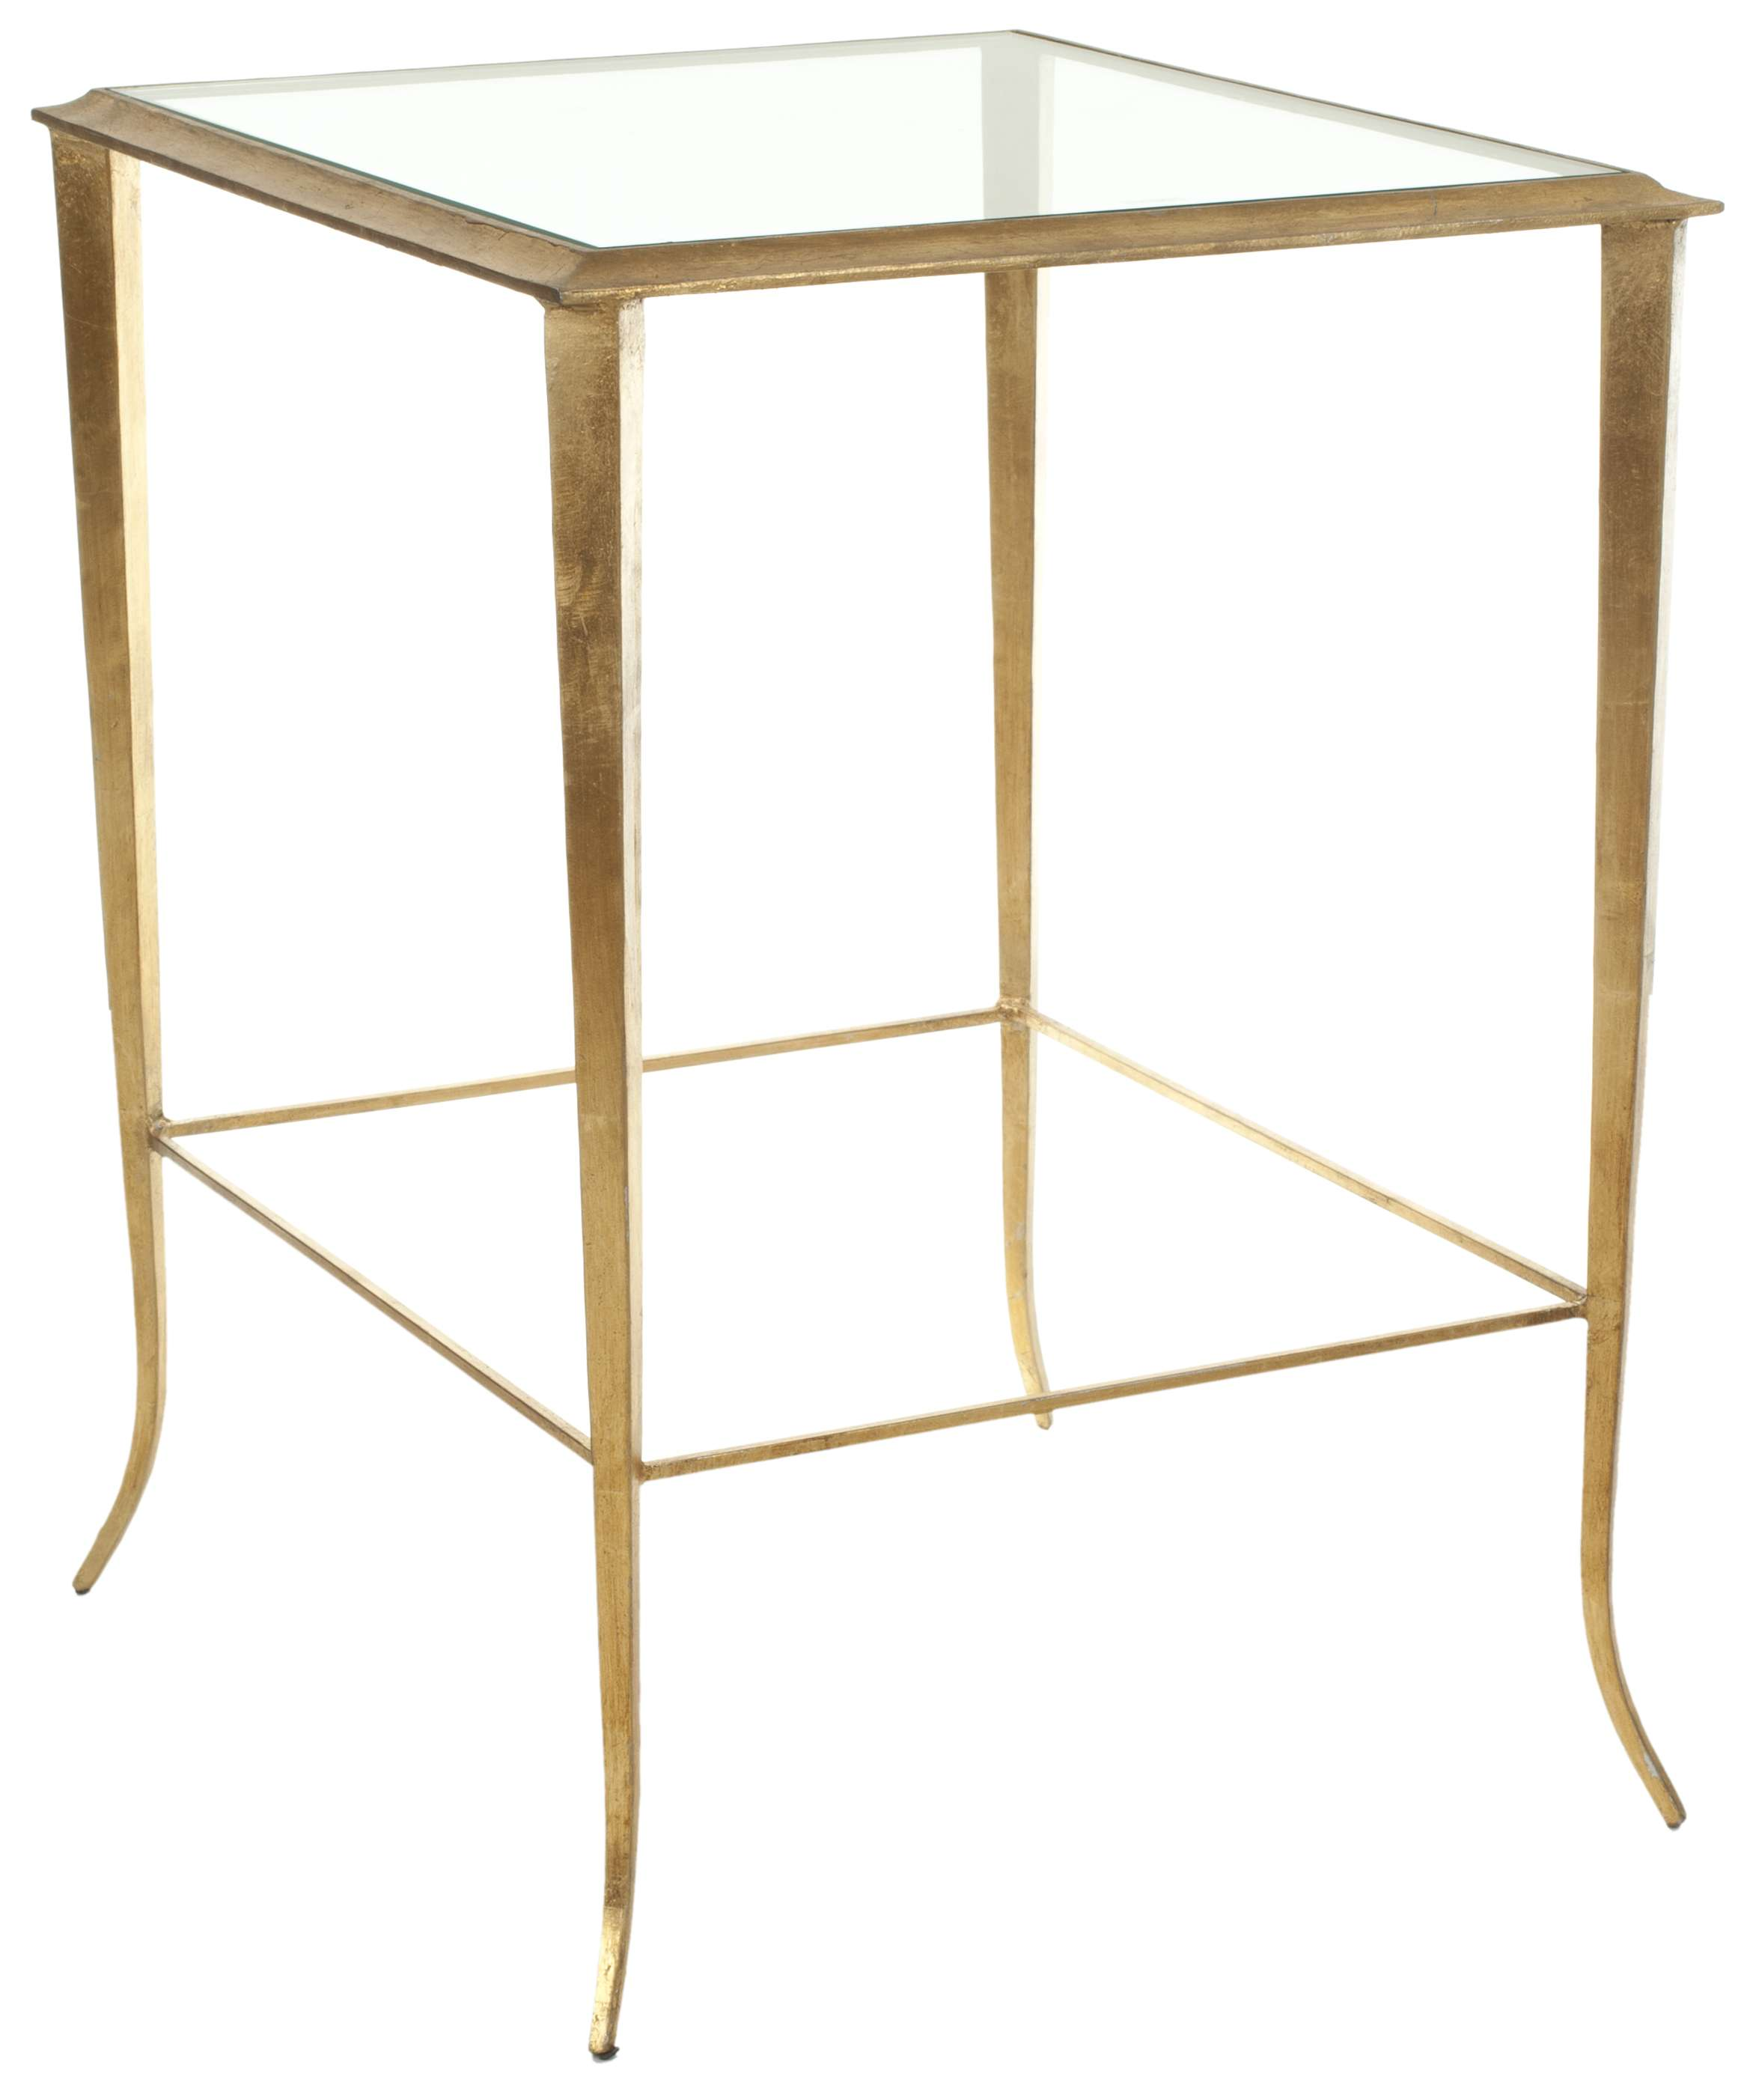 safavieh tory gold foil glass top accent table reviews goedekers decorative mirrors pier one end tables side design for drawing room gray target holland furniture fur chrome small